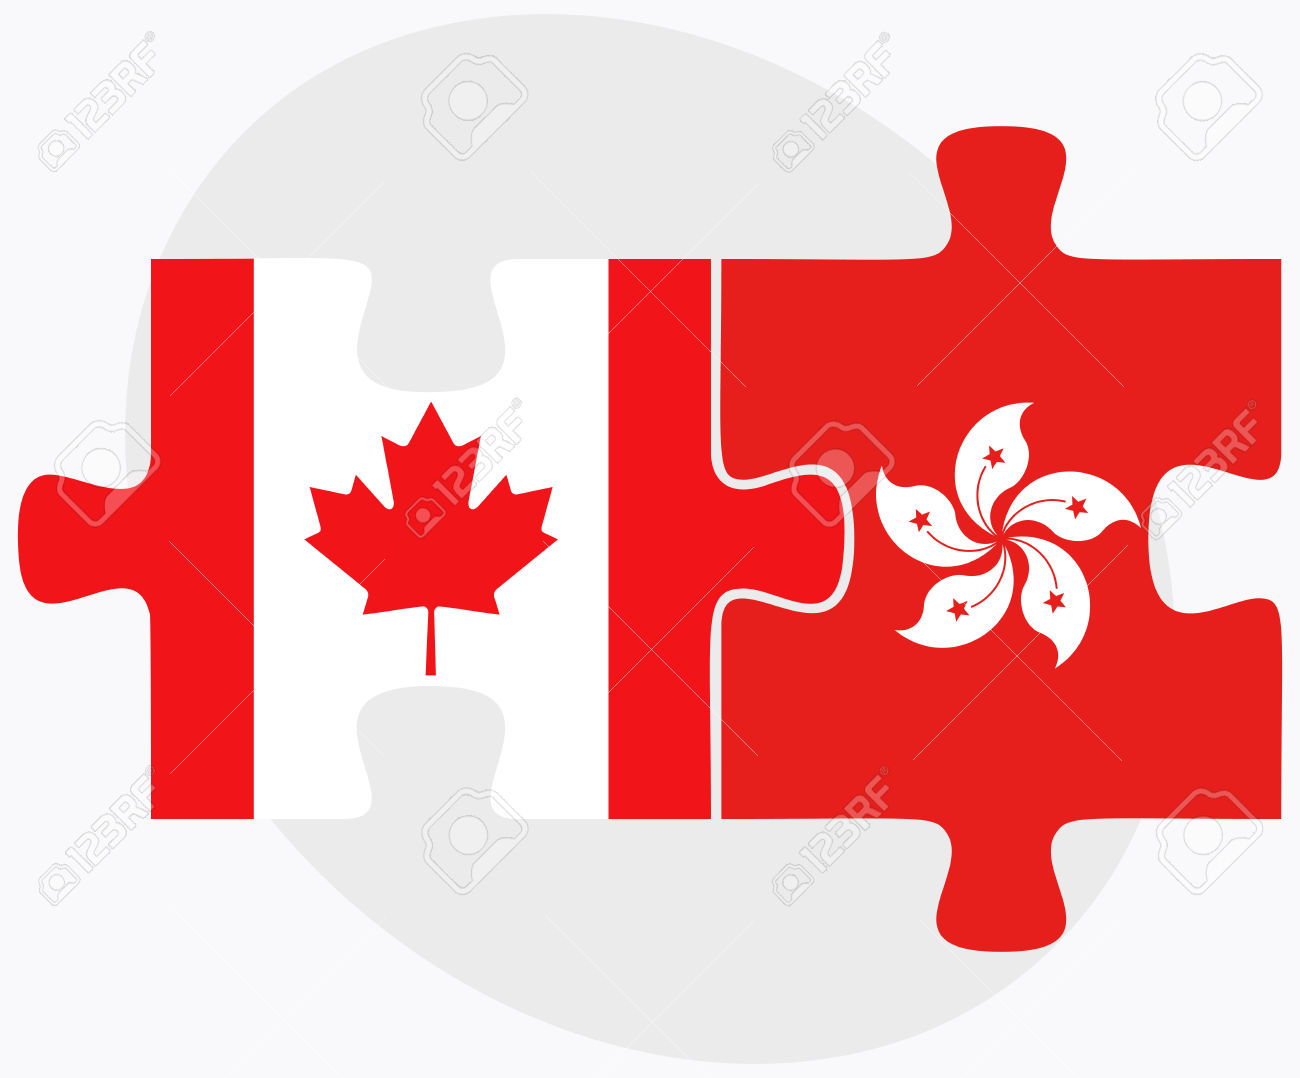 Canada And Hong Kong SAR China Flags In Puzzle Isolated On White.